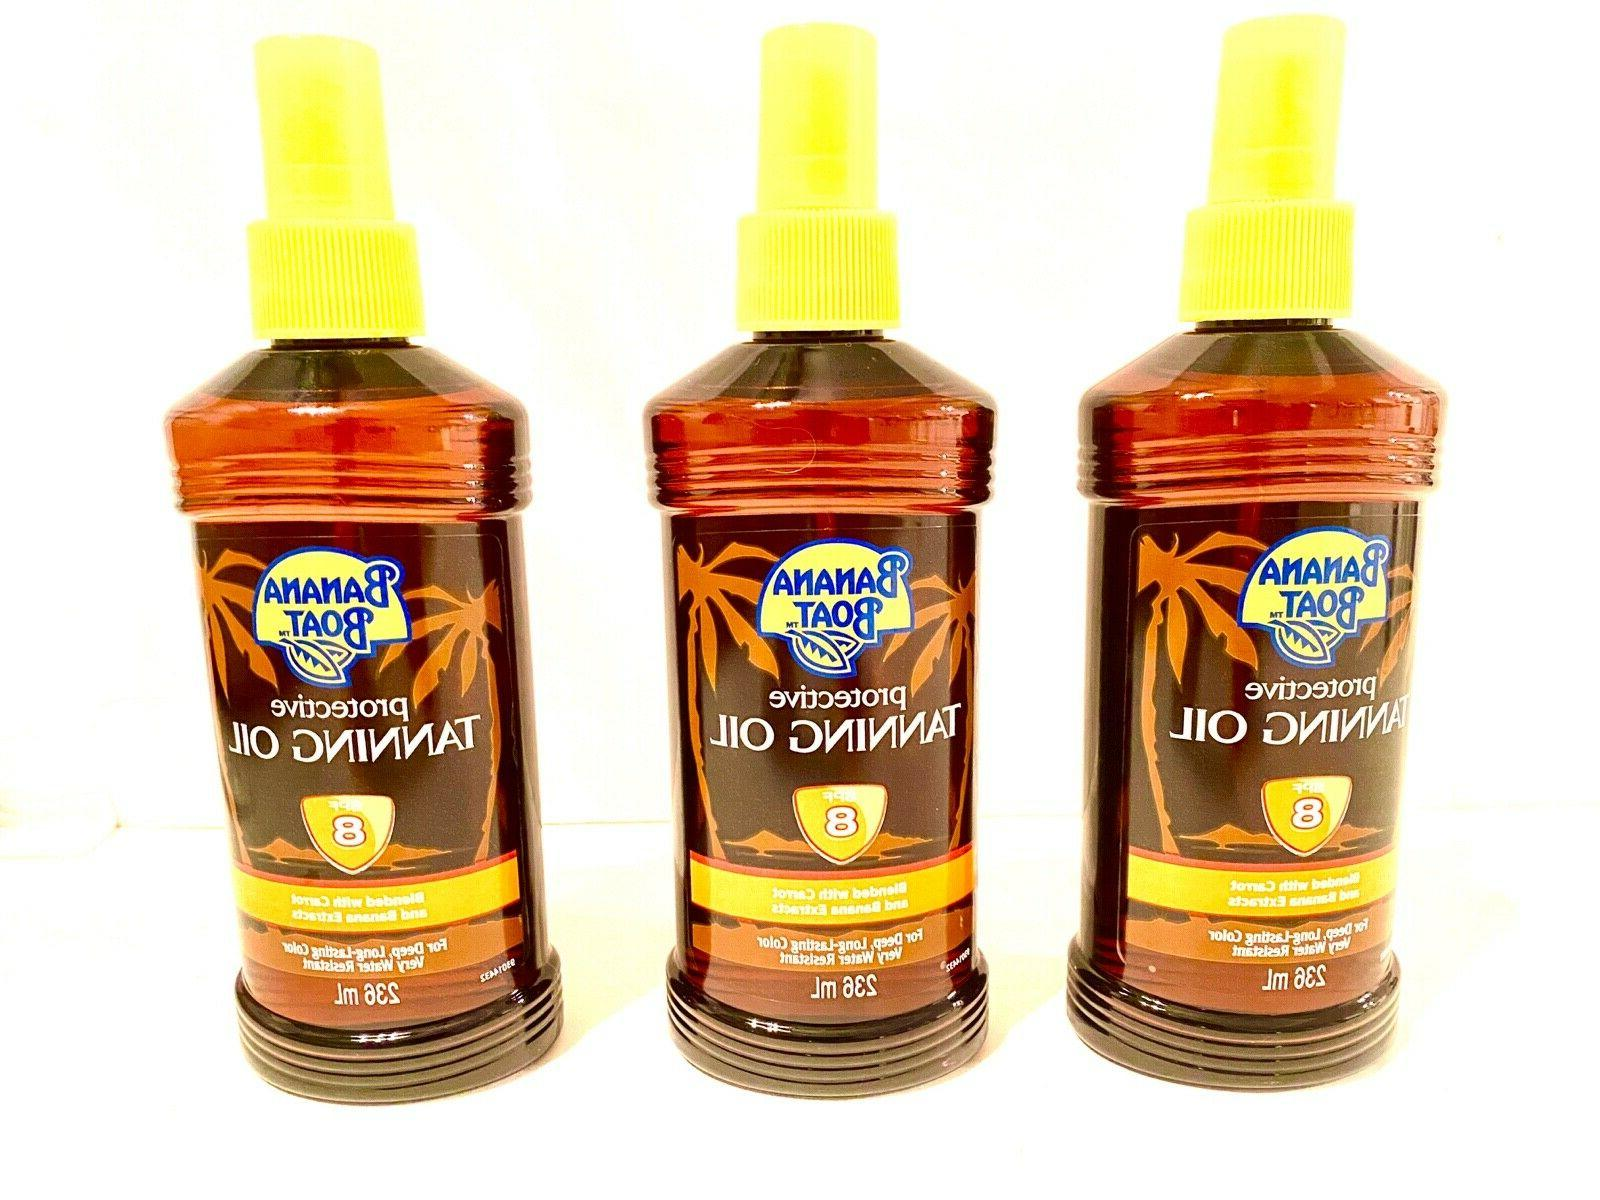 12 - 8oz. Bottles of Banana Boat Protective Tanning Oil Spra